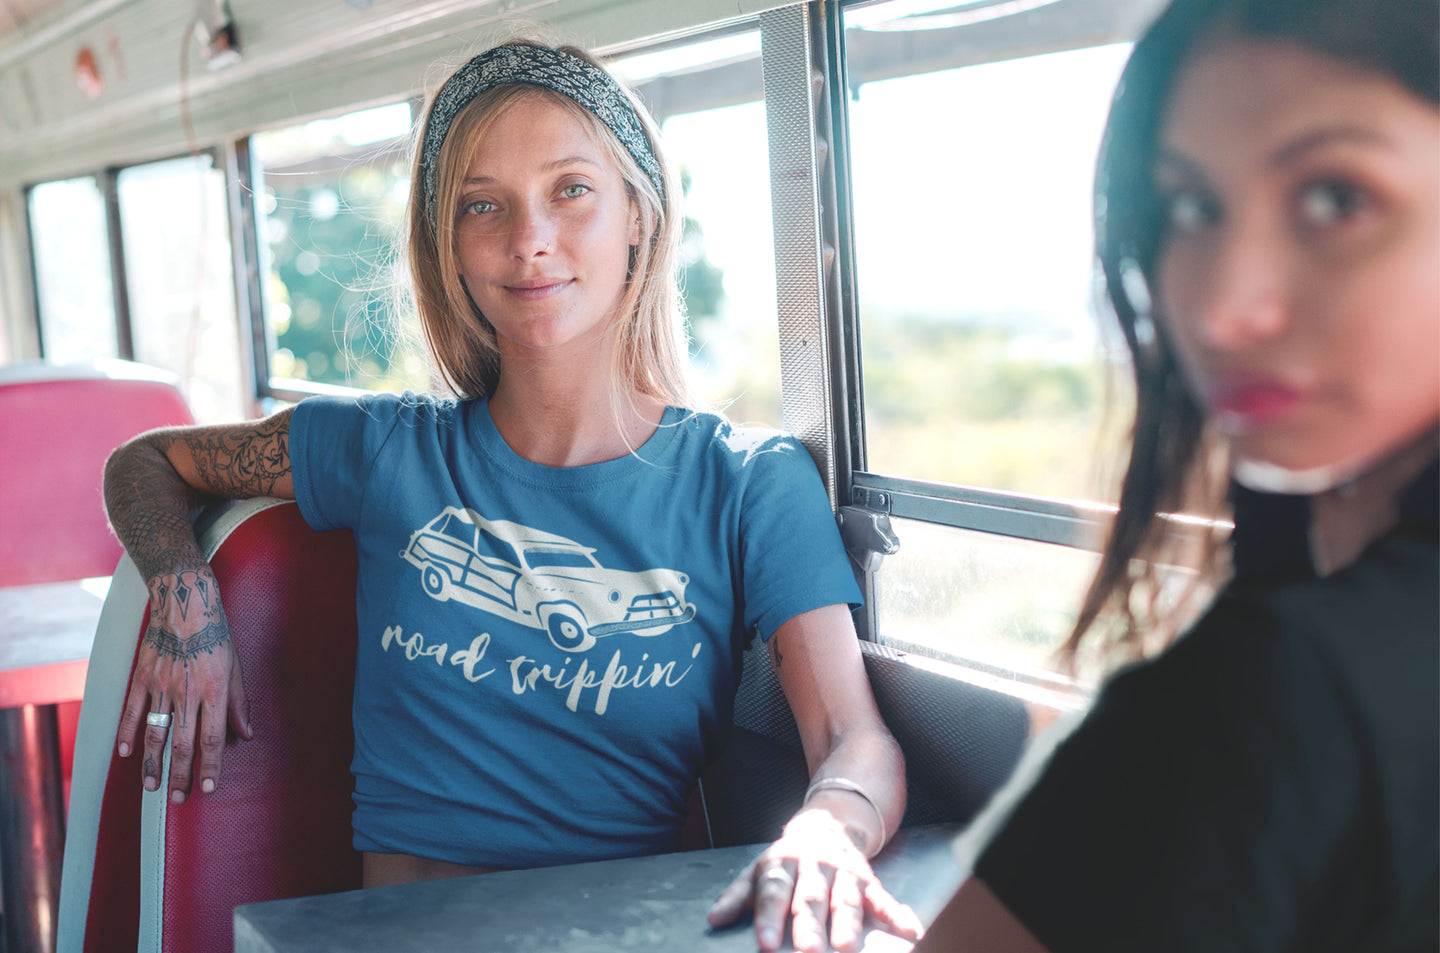 Road Trippin' teal tee by Modern Trail